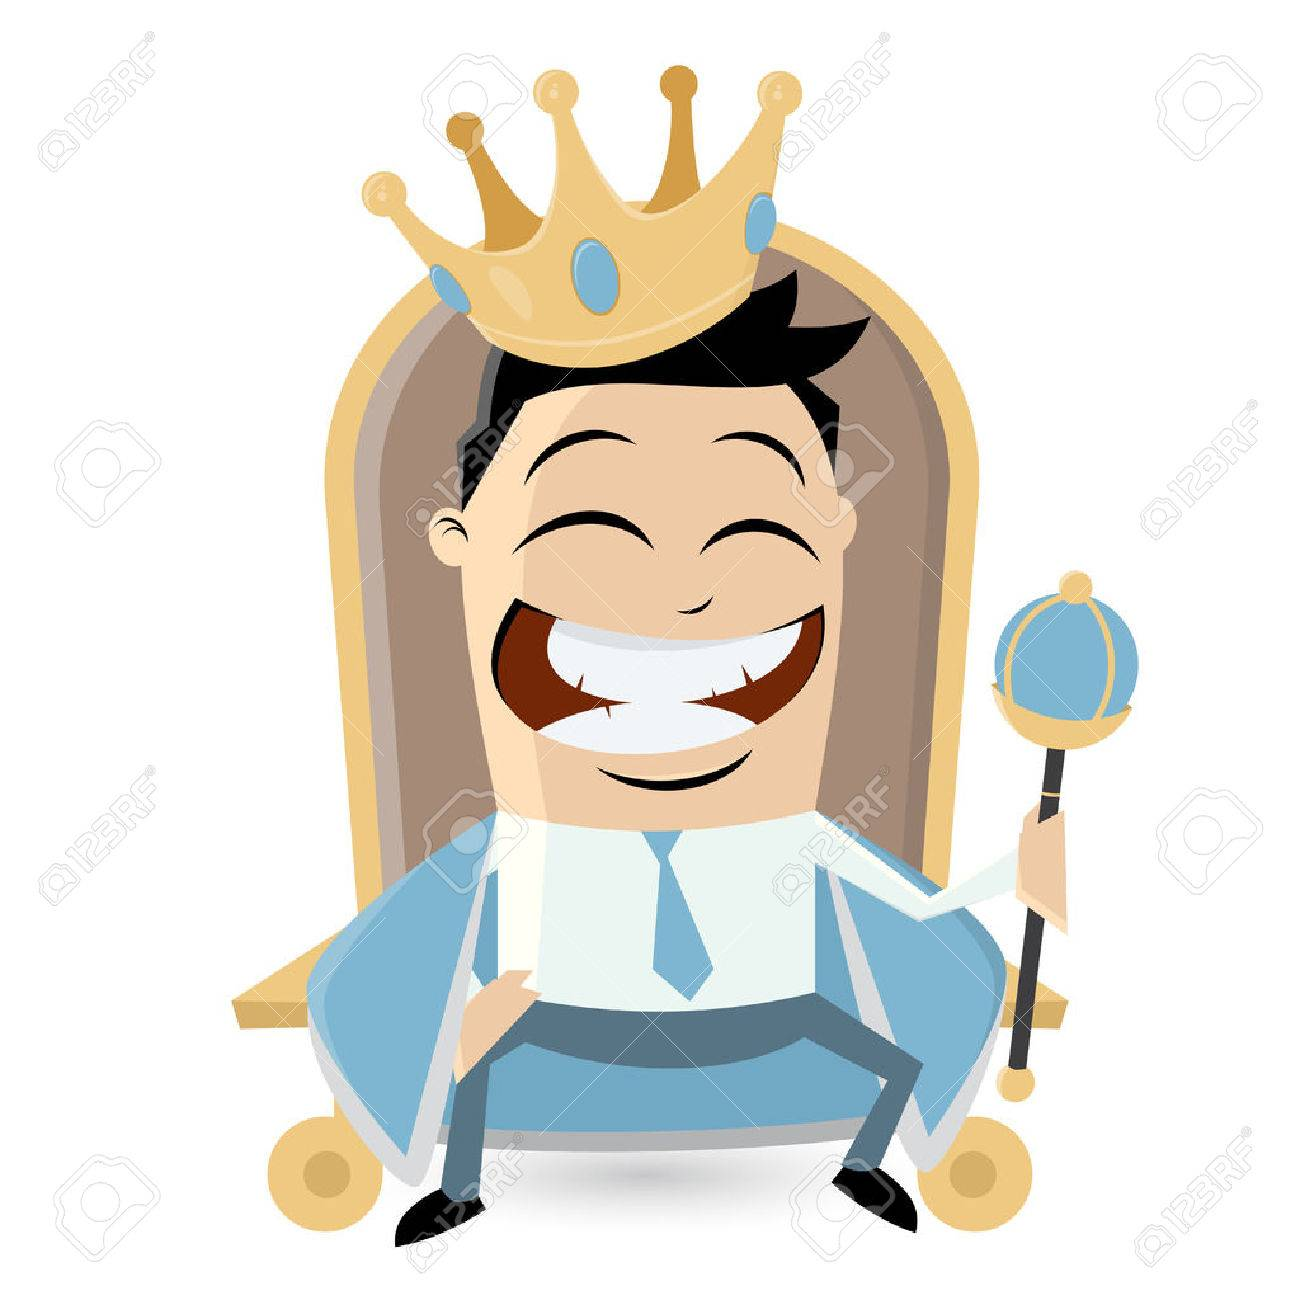 1300x1300 King On Throne Clipart Royalty Free Cliparts, Vectors, And Stock